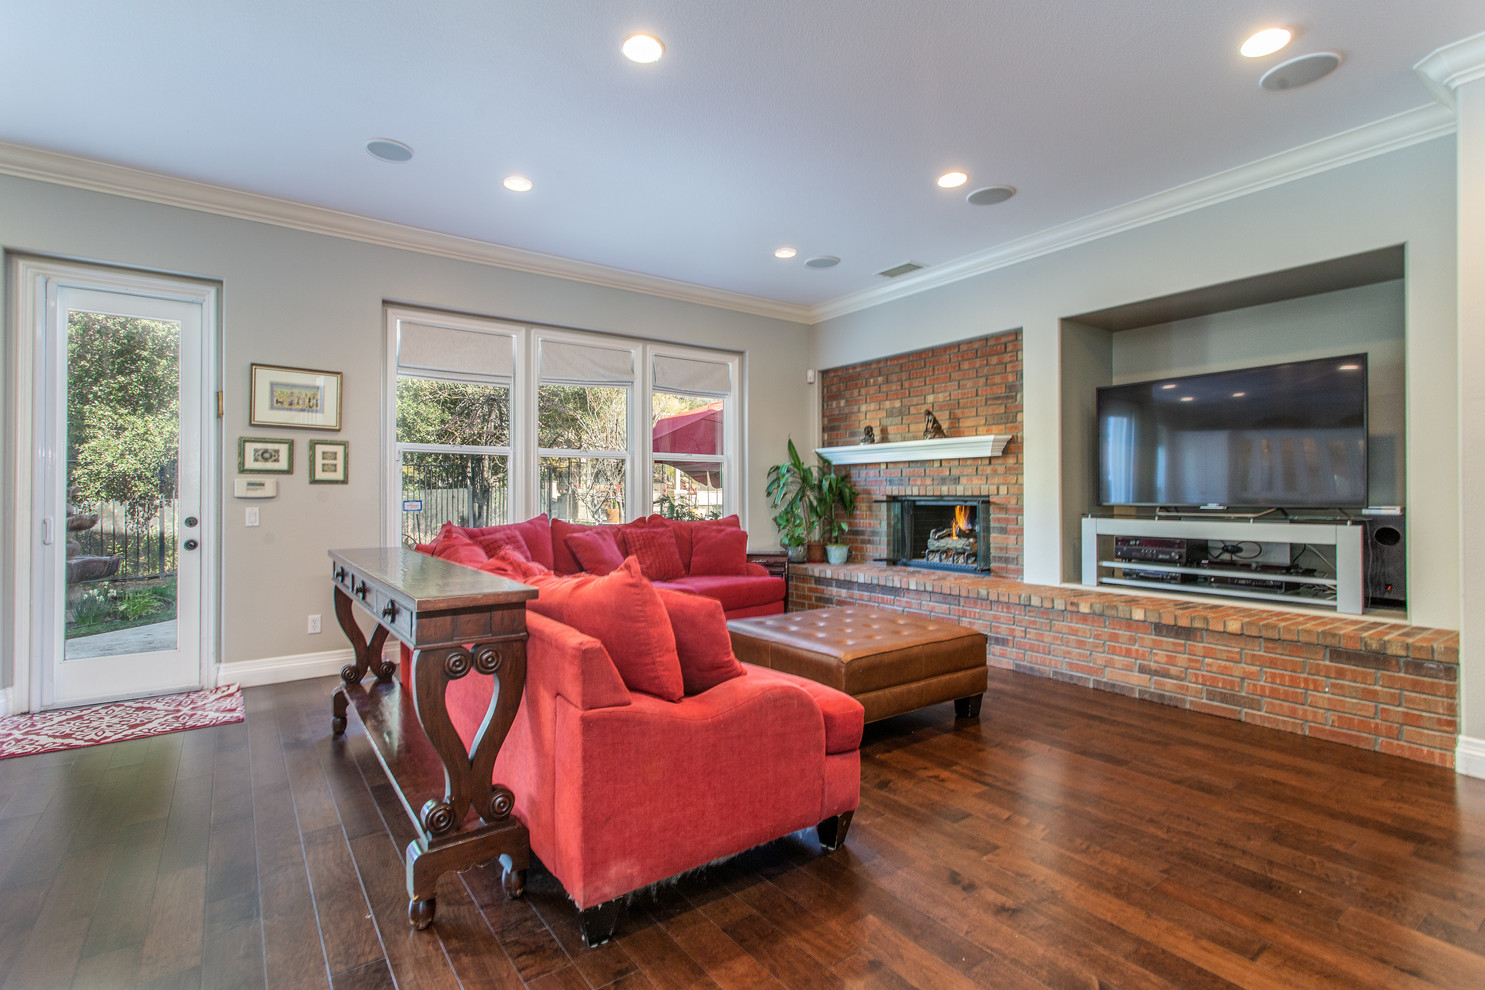 1543 Sycamore Canyon Dr - HsH Prod.-26.j